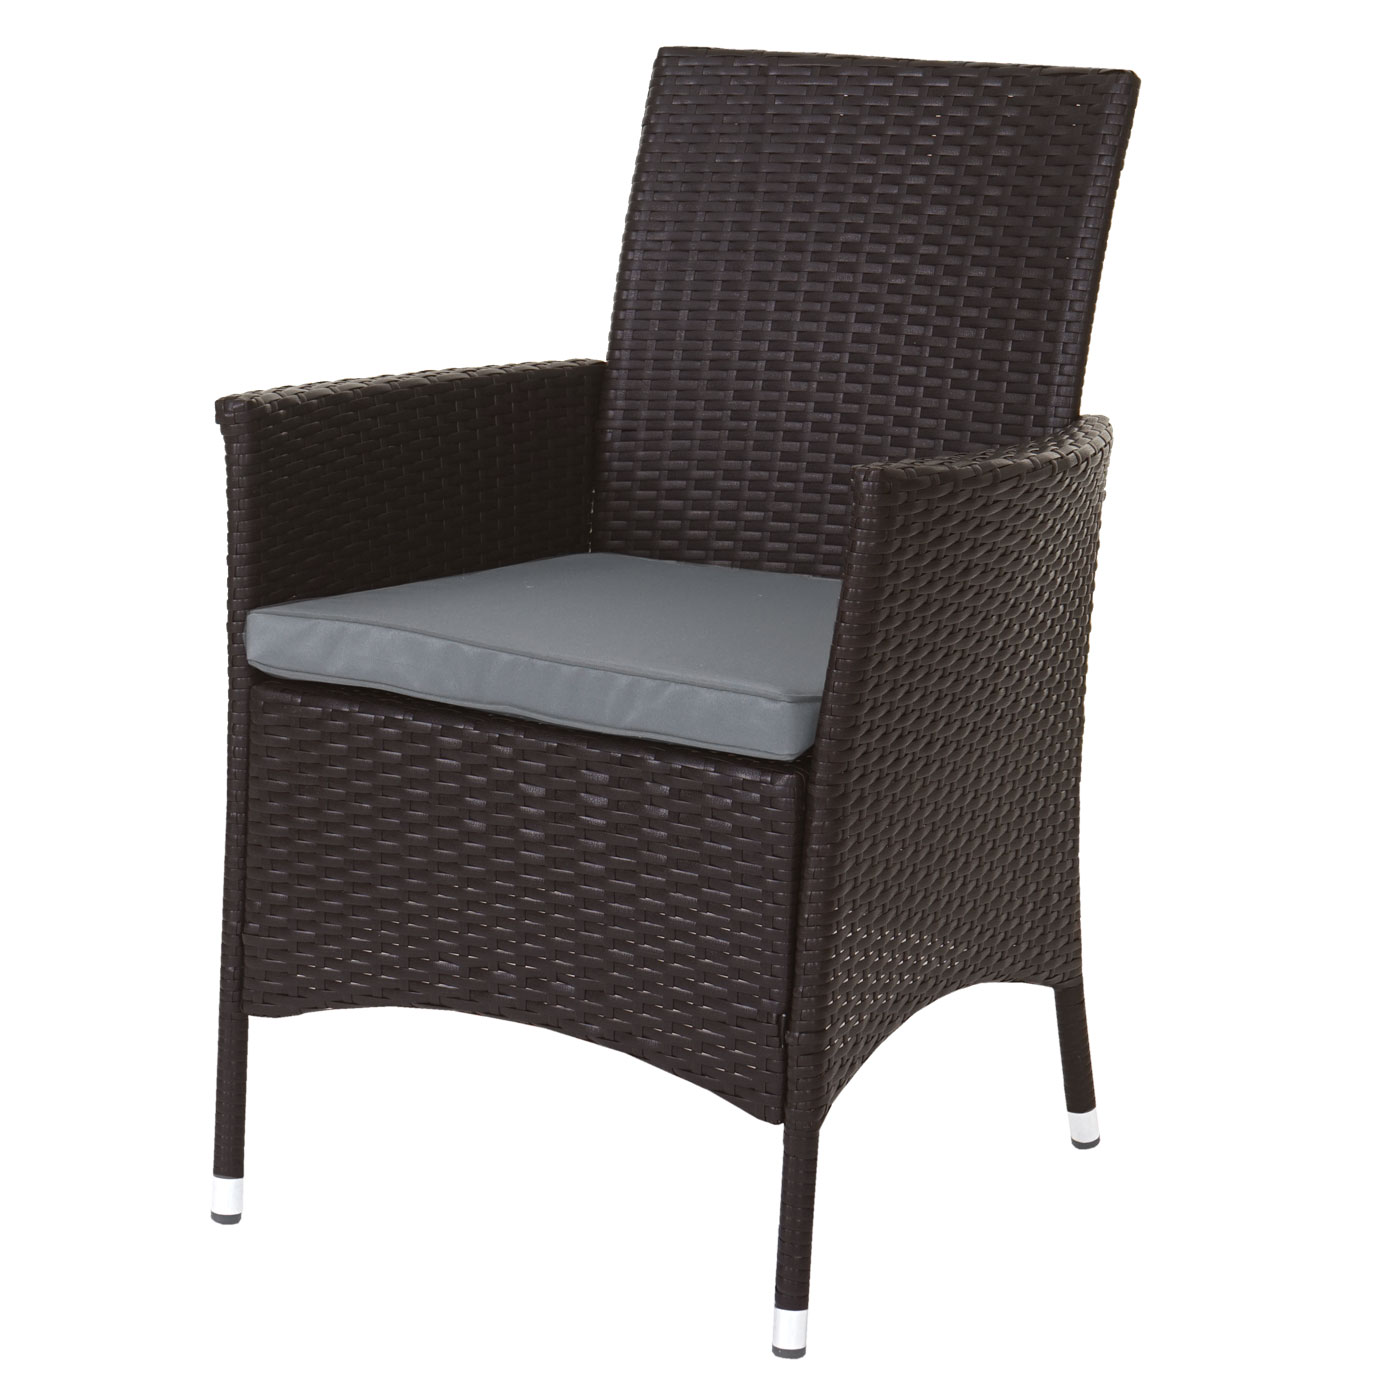 poly rattan garnitur terni garten sitzgruppe tisch 8 sessel alu braun kissen hellgrau. Black Bedroom Furniture Sets. Home Design Ideas